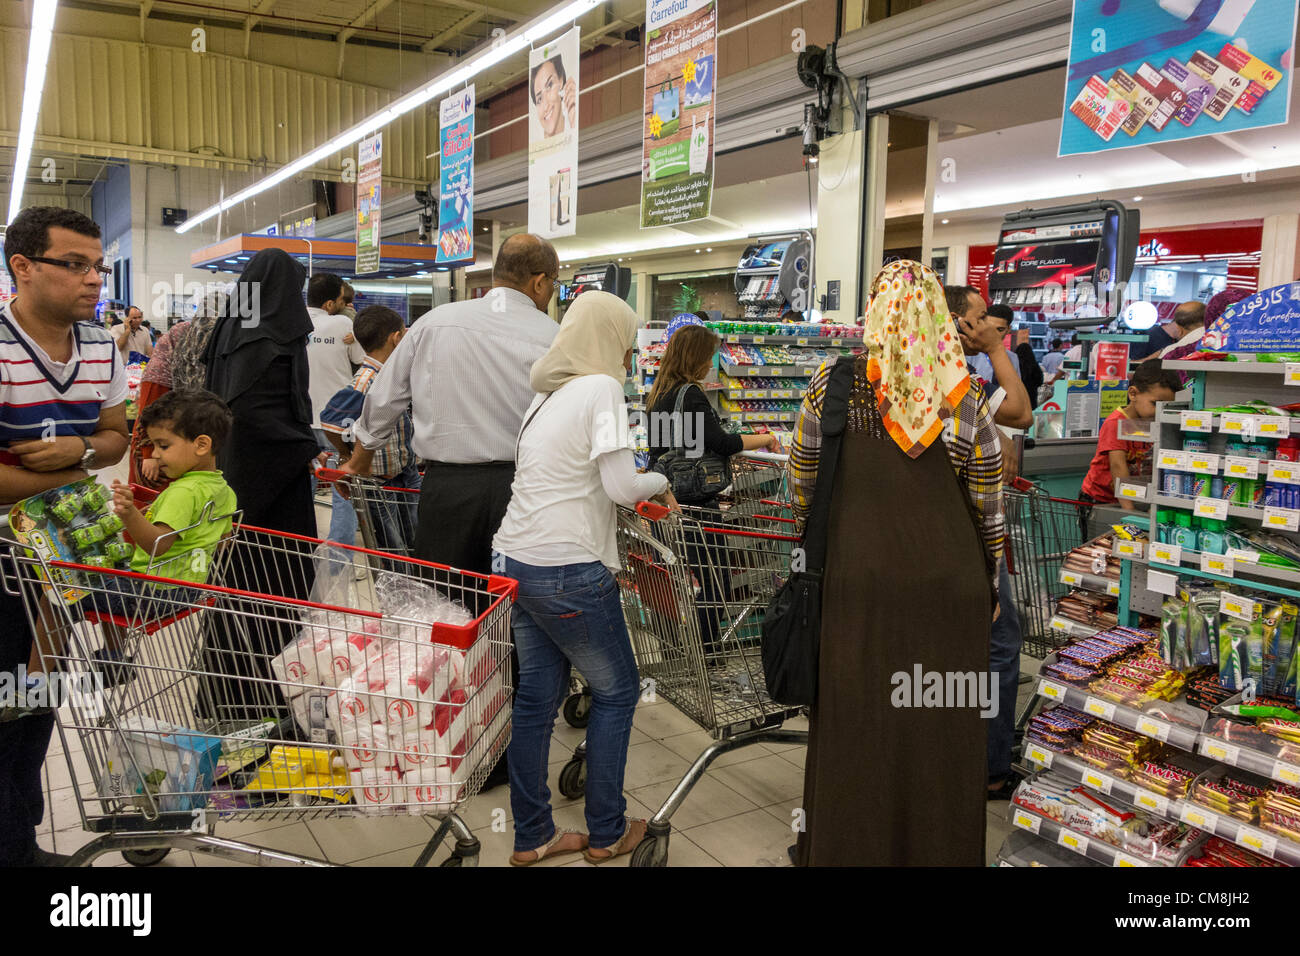 28 October 2012 Egypt Cairo Shoppers Crowding Carrefours